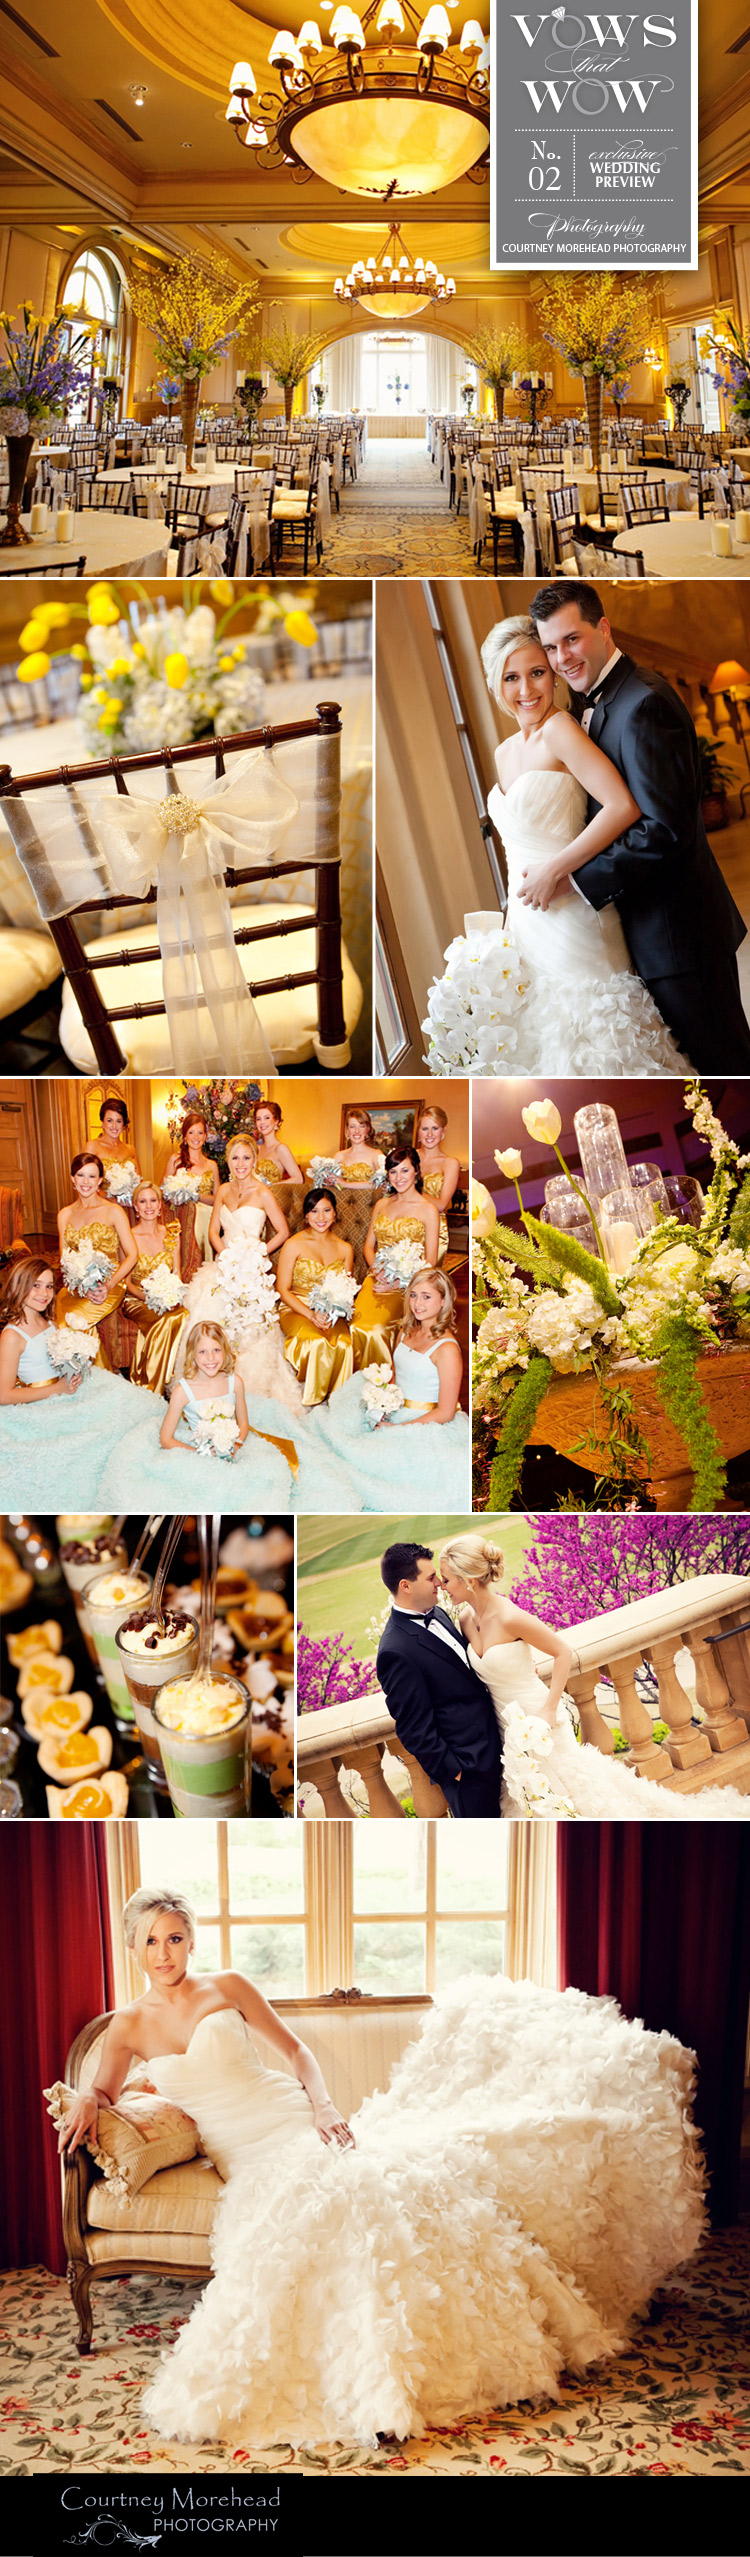 vows that wow–no 2–taylor–brian